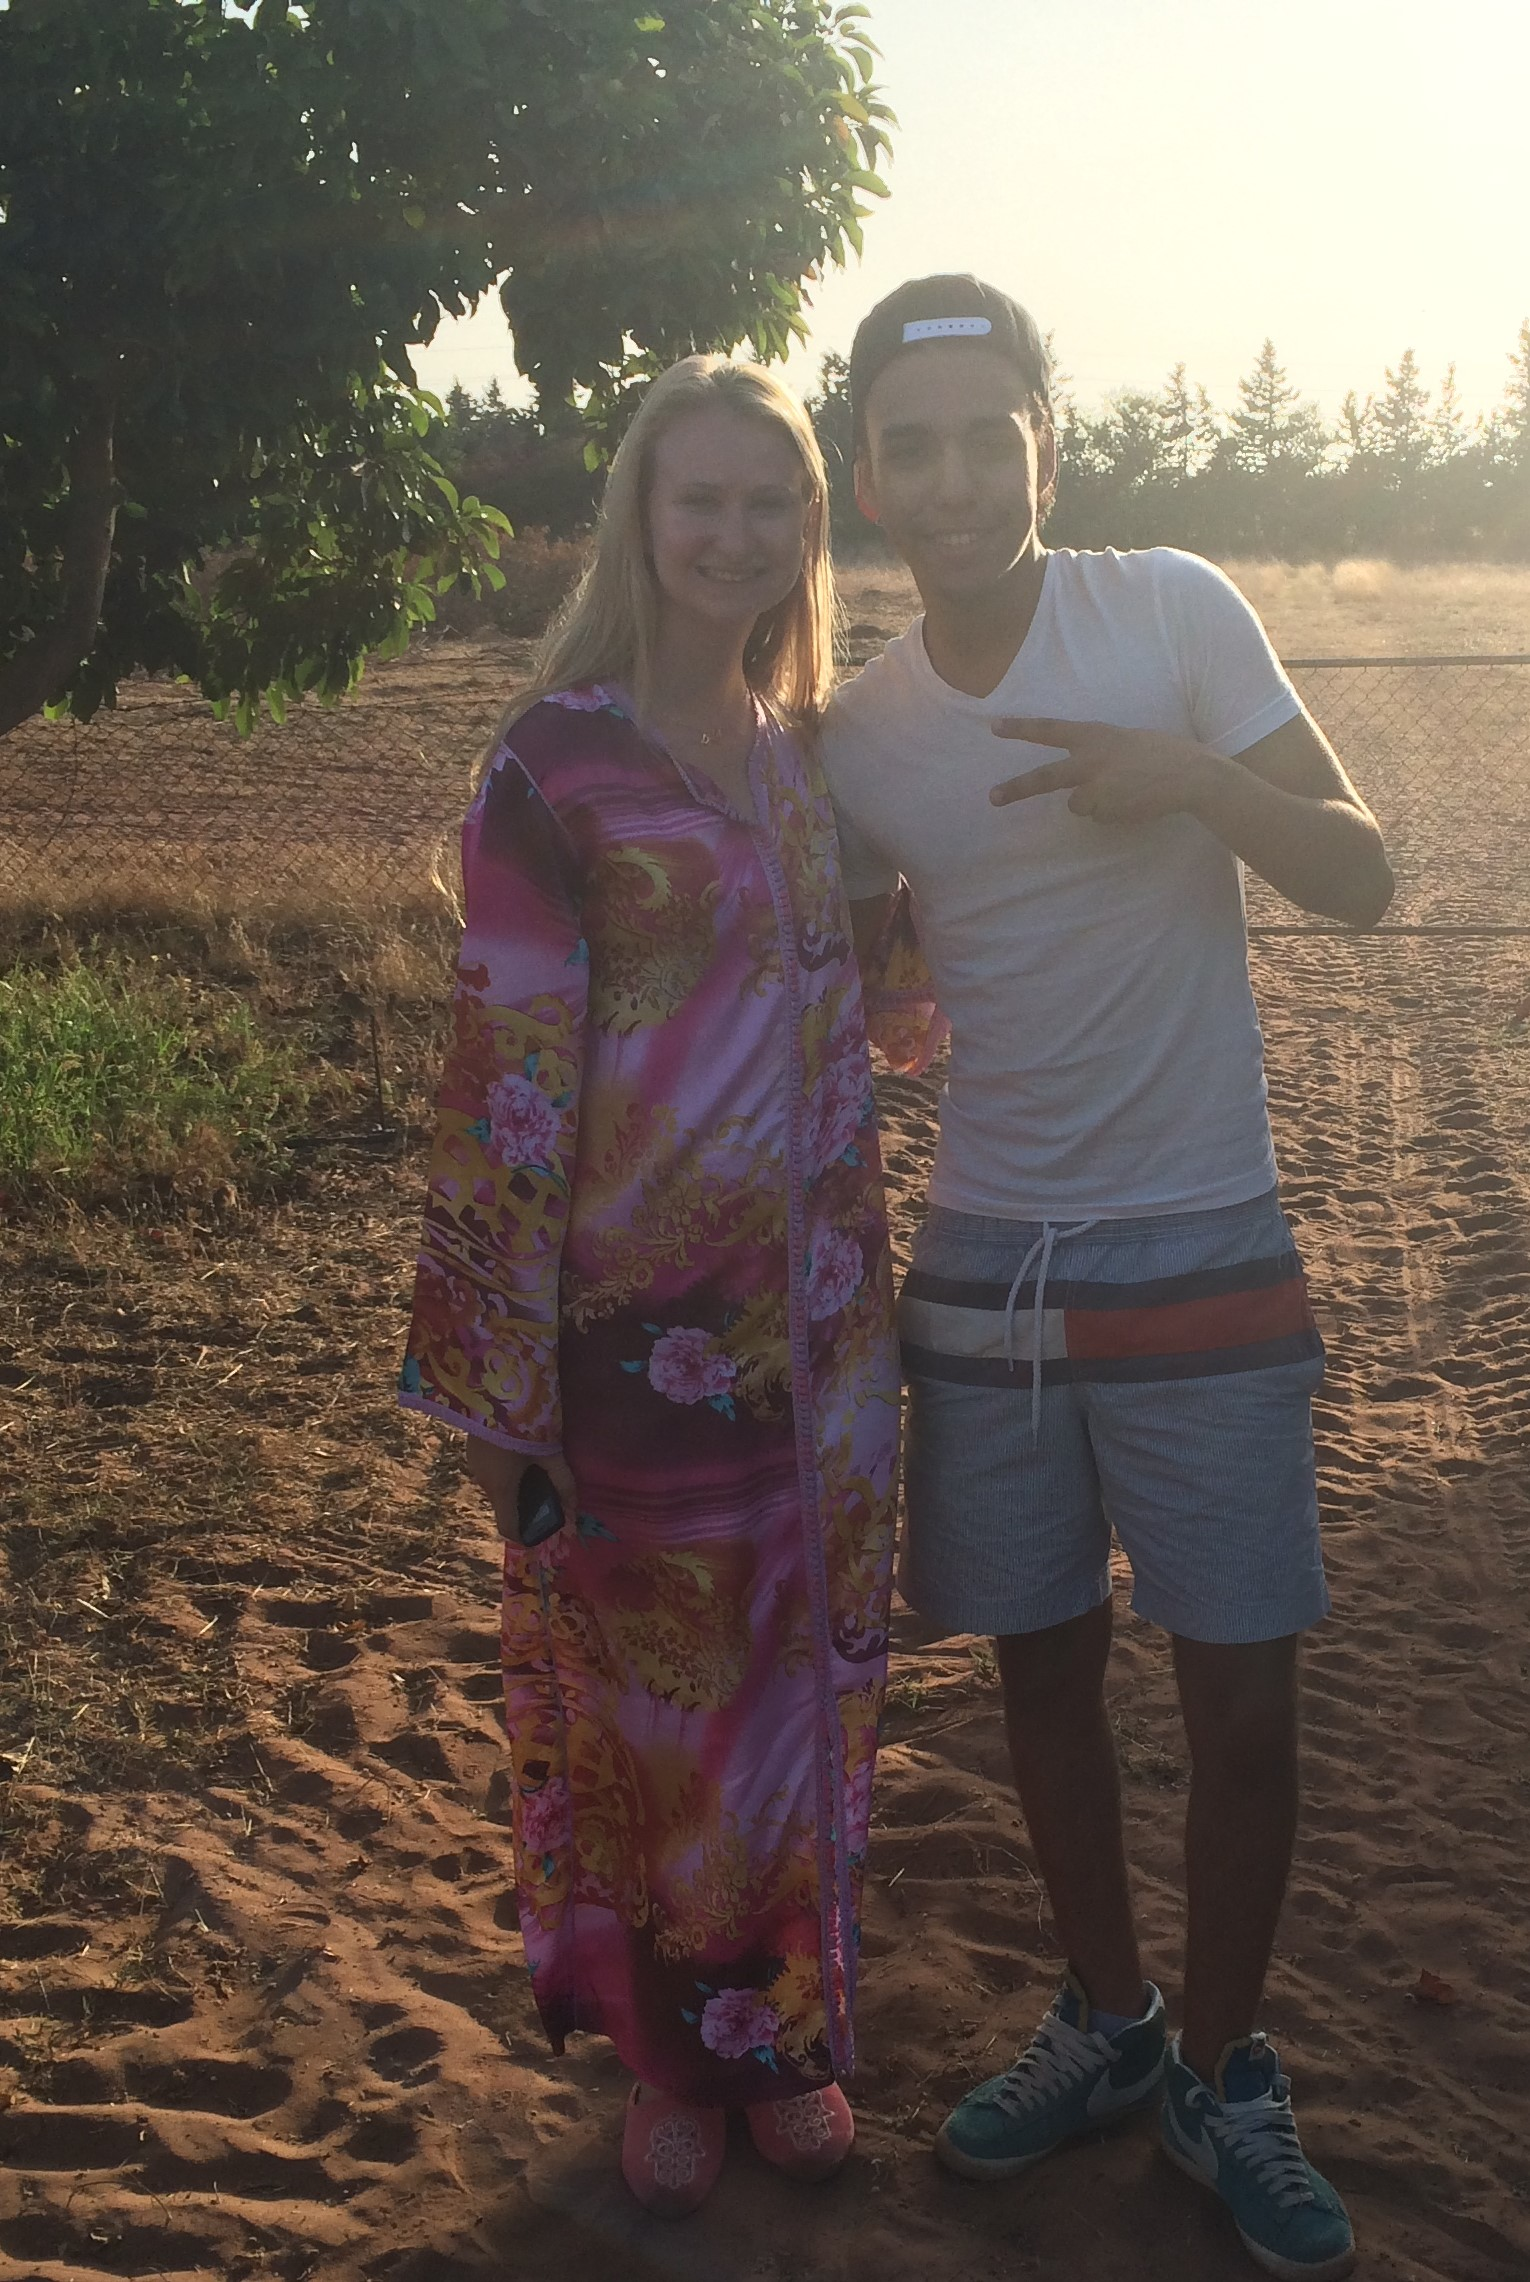 Anna Rose, wearing a pink dress, and her host sibling, in casual dress, on a sandy terrain.